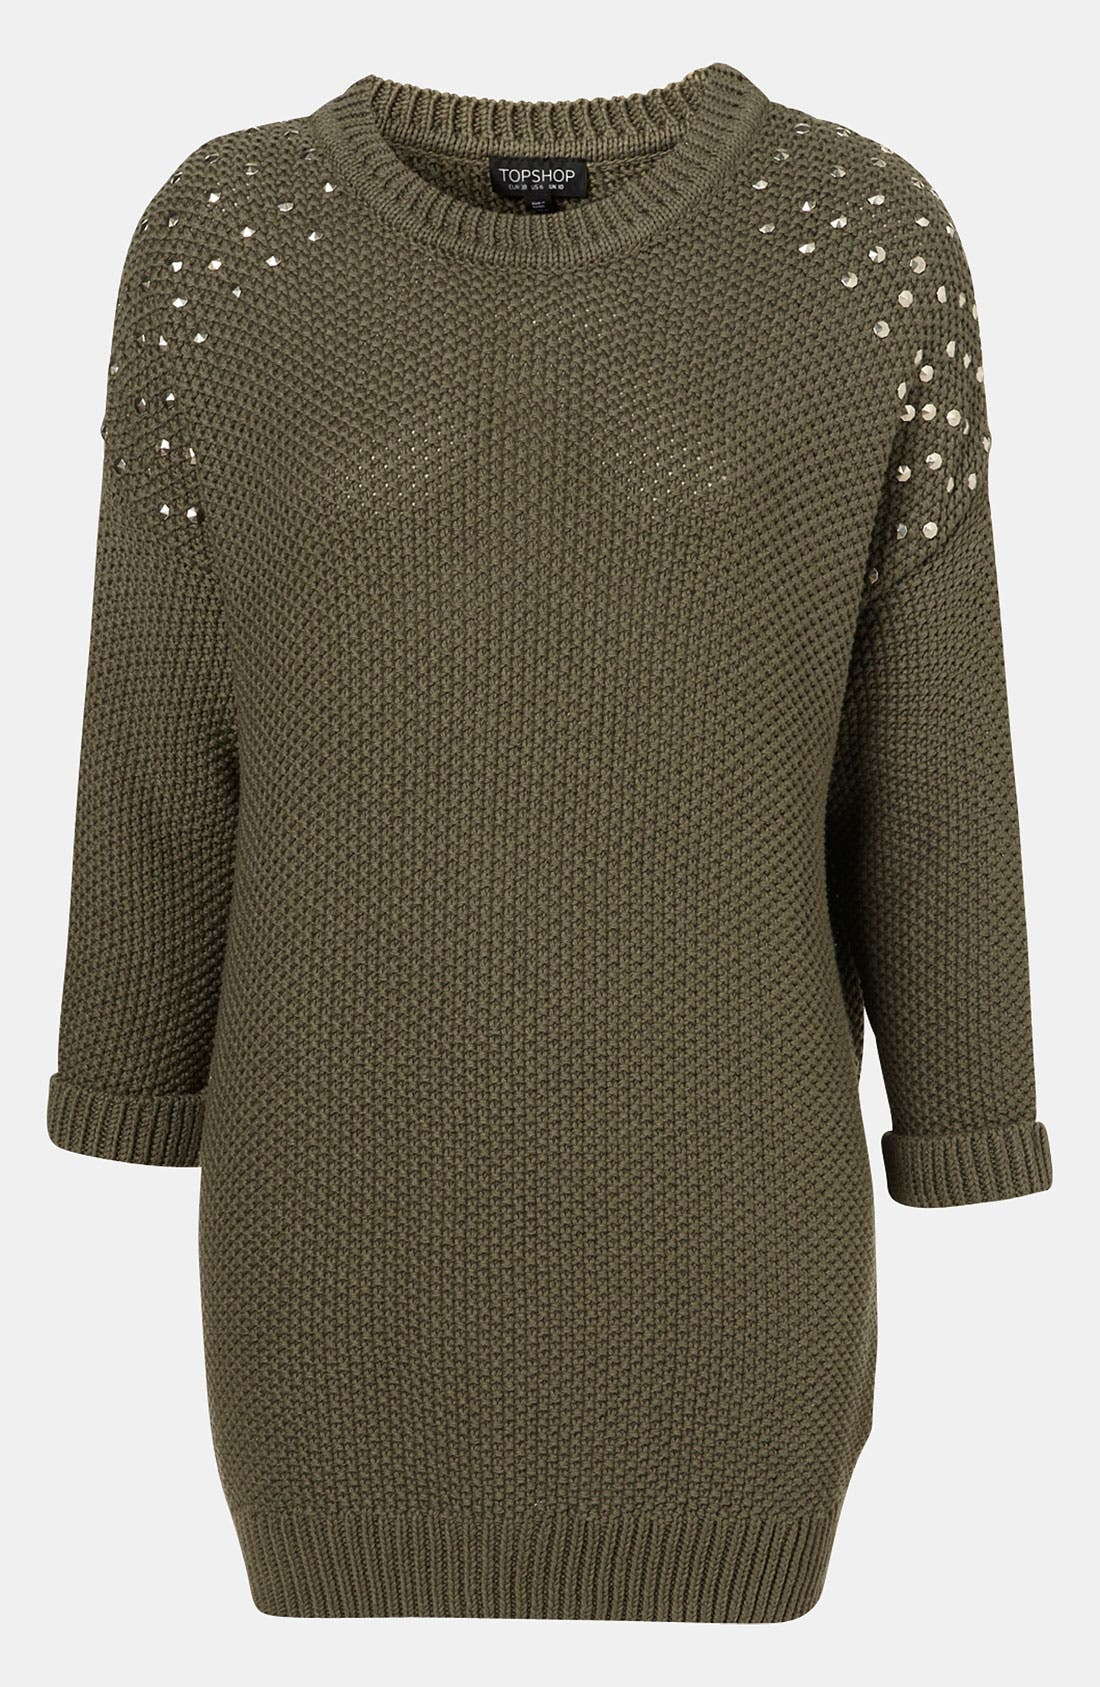 Main Image - Topshop Studded Shoulder Tunic Sweater